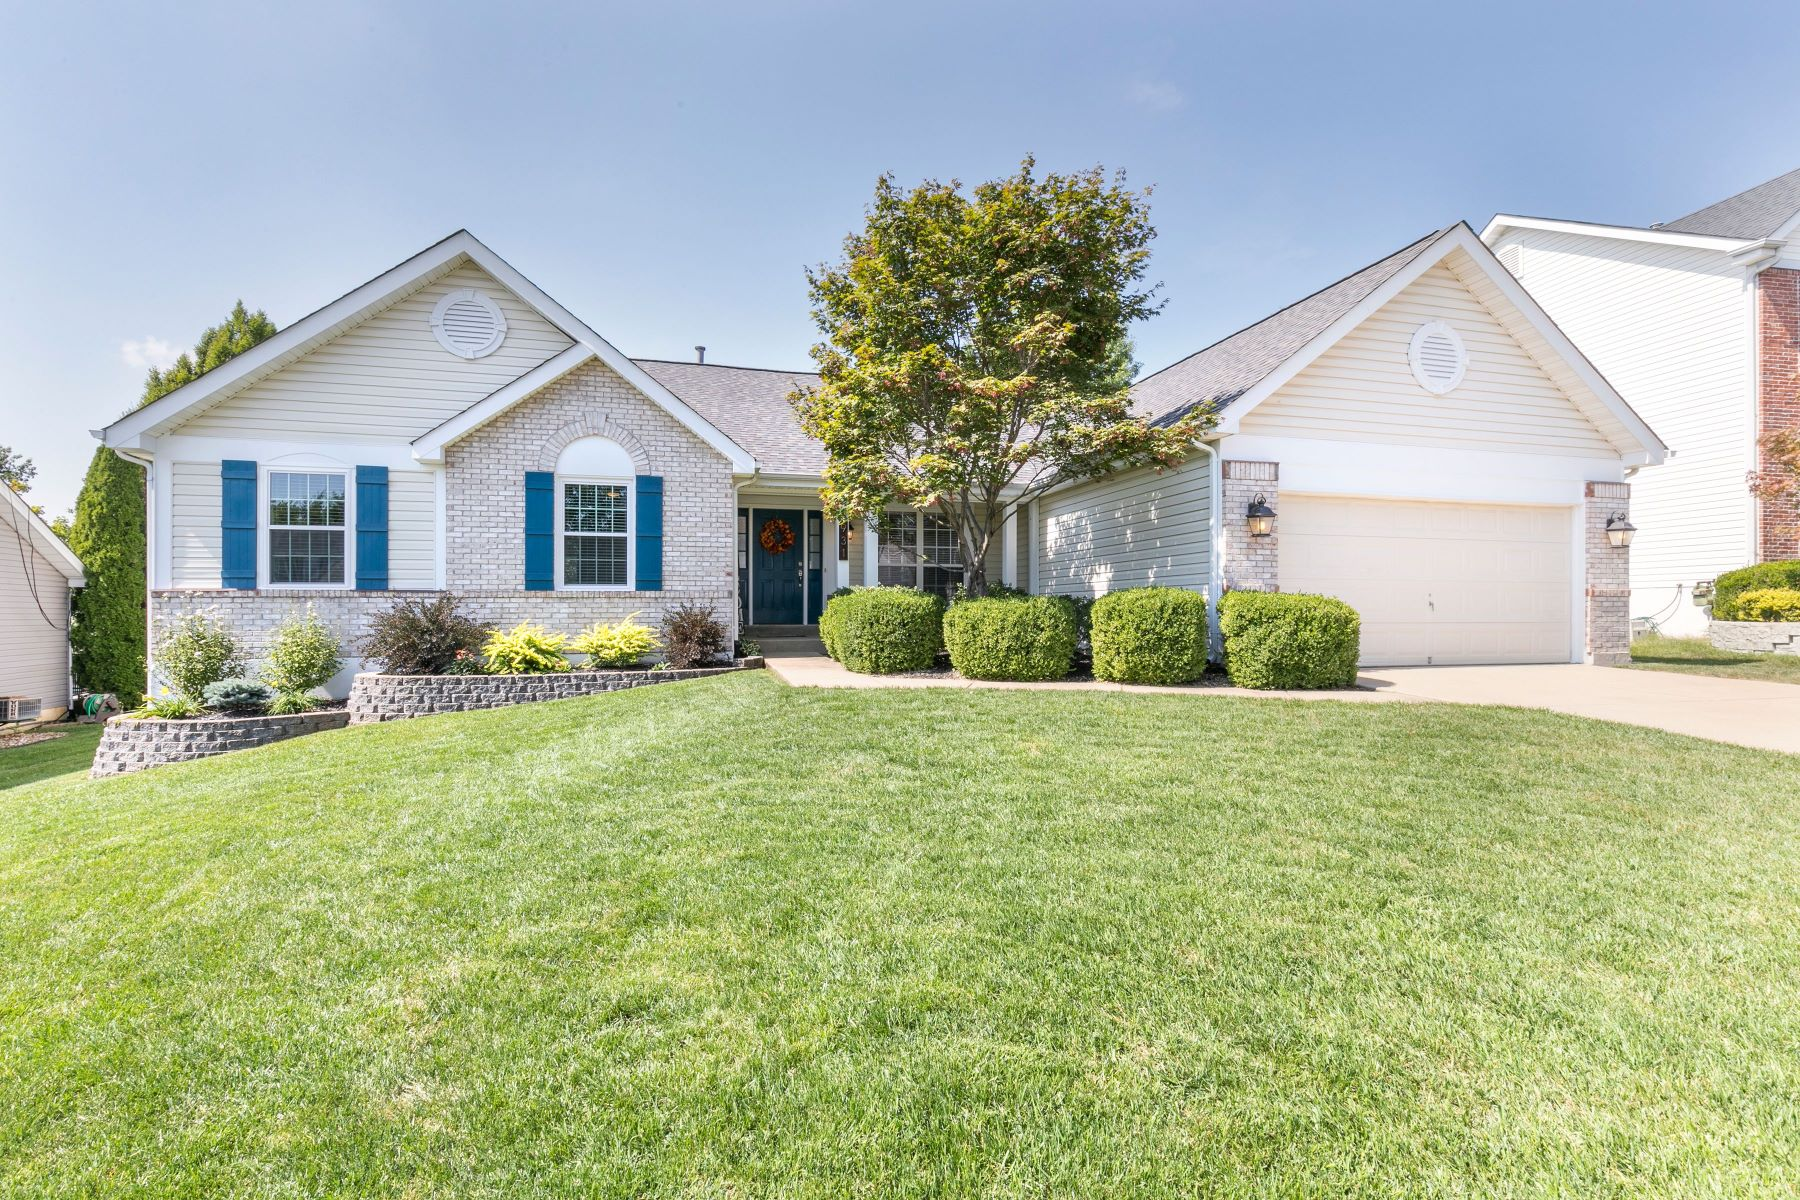 Single Family Homes for Sale at Golf Course Community 931 Green Briar Hills Drive O Fallon, Missouri 63366 United States